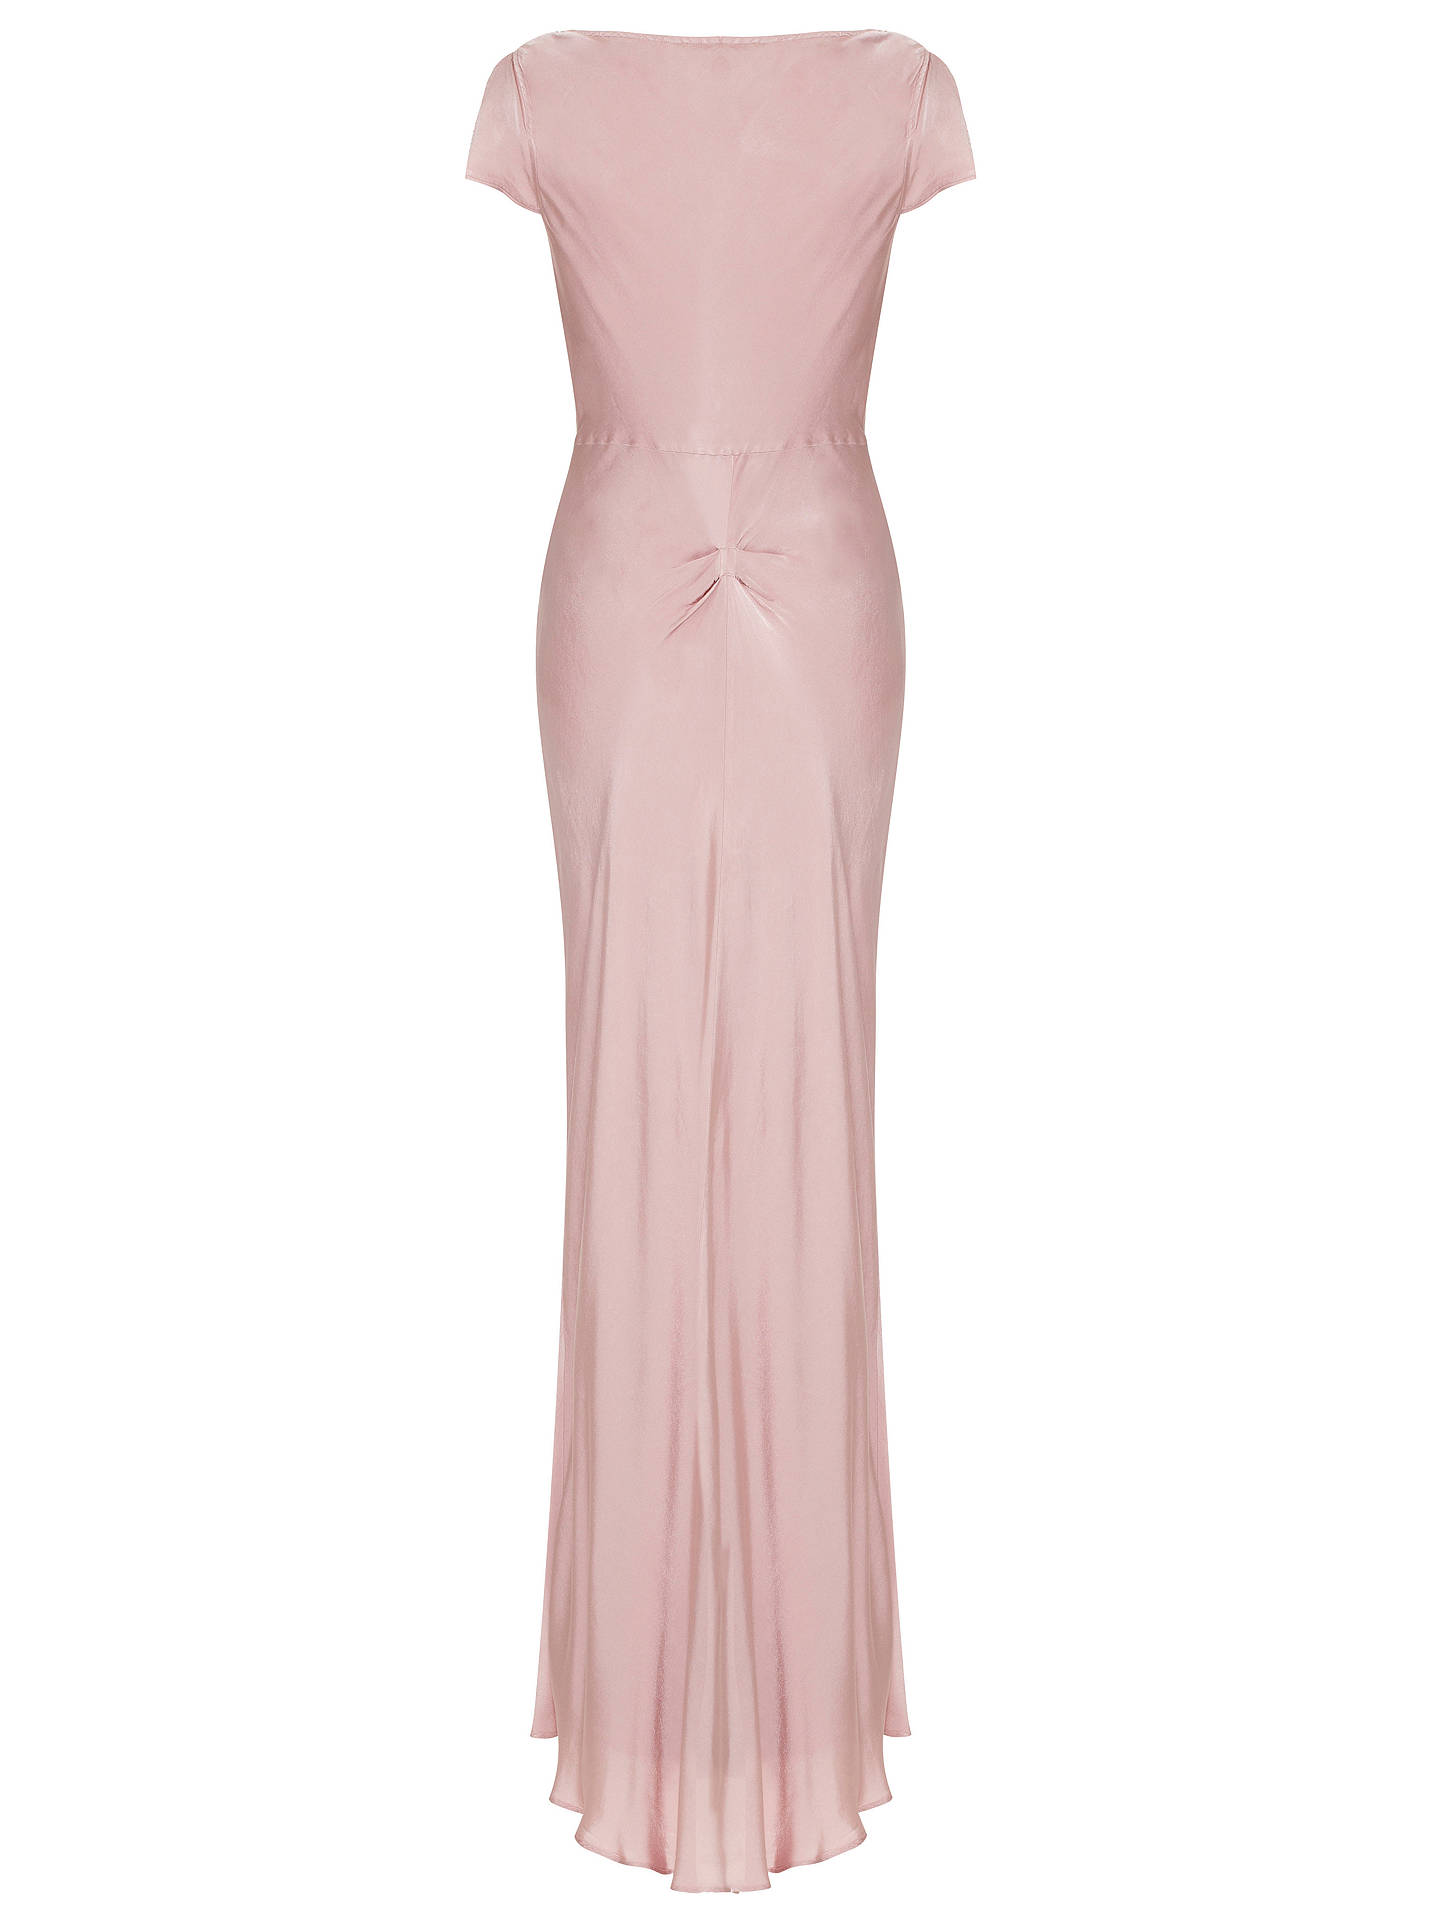 BuyGhost Hollywood Sylvia Dress, Pink, XS Online at johnlewis.com